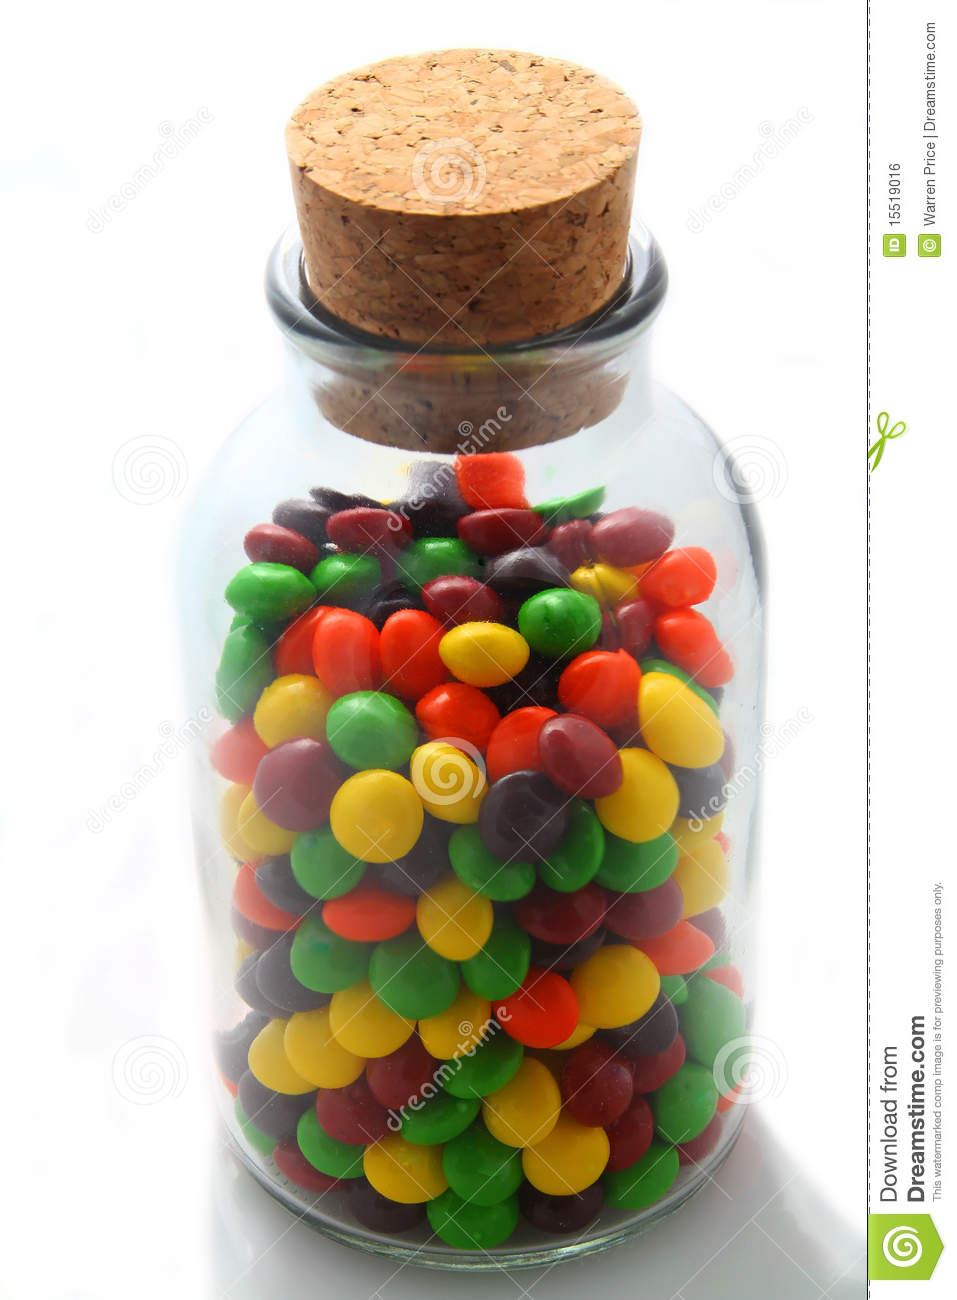 Closeup of various colors of candy in an antique glass jar with cork